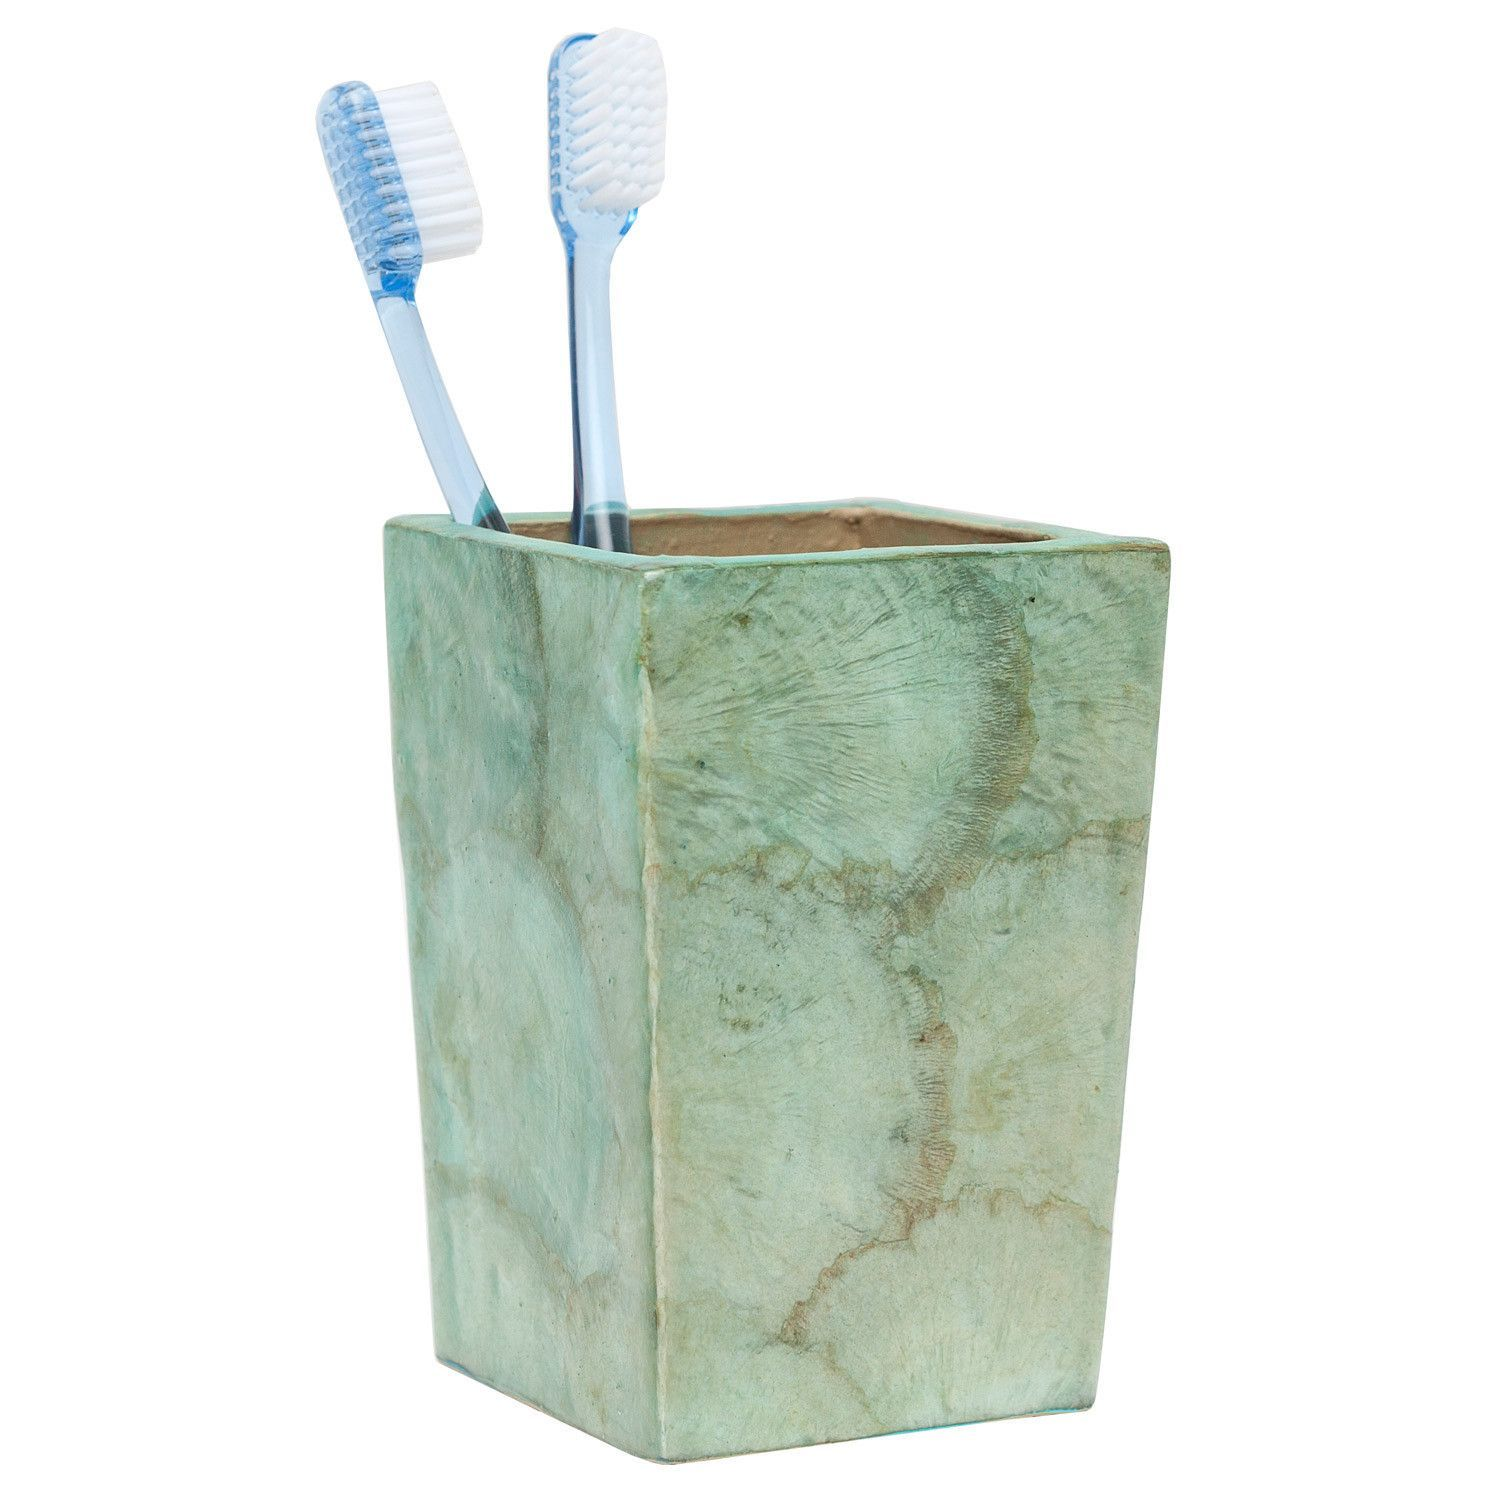 andria Toothbrush Holder Aqua Toothbrush Holders Products and